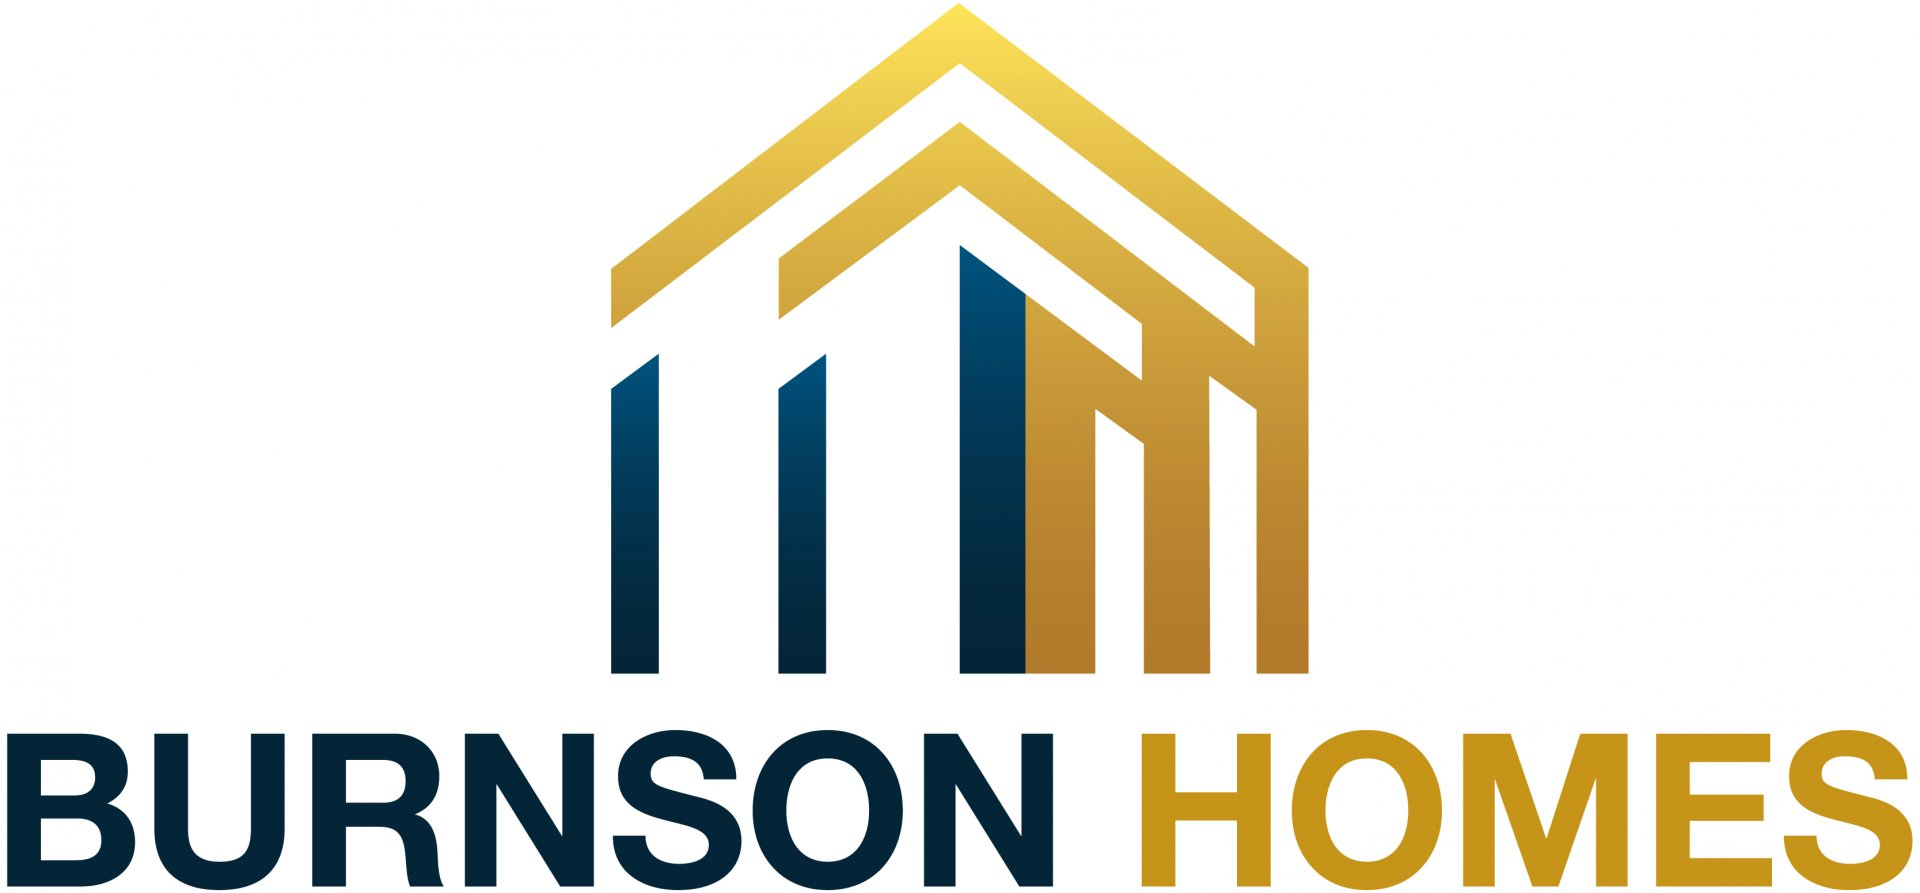 Burnson Homes logo